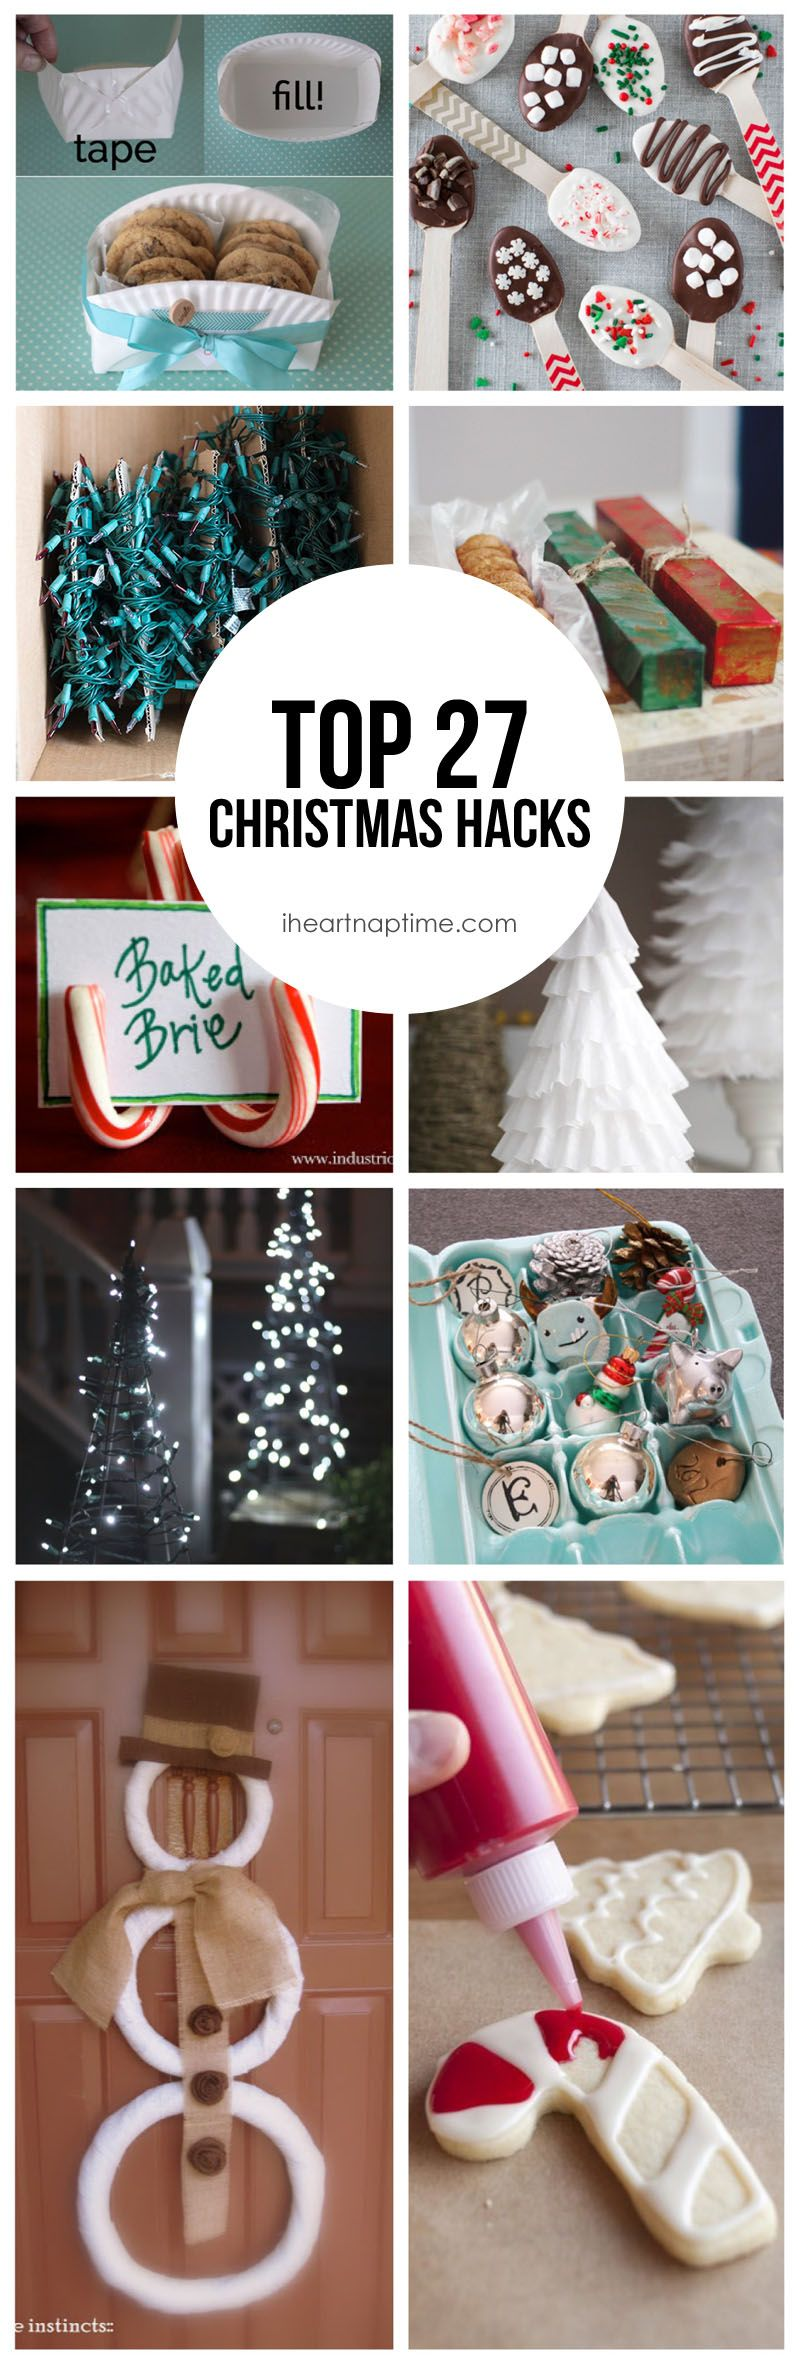 27 Christmas Hacks -   15 holiday Hacks good ideas